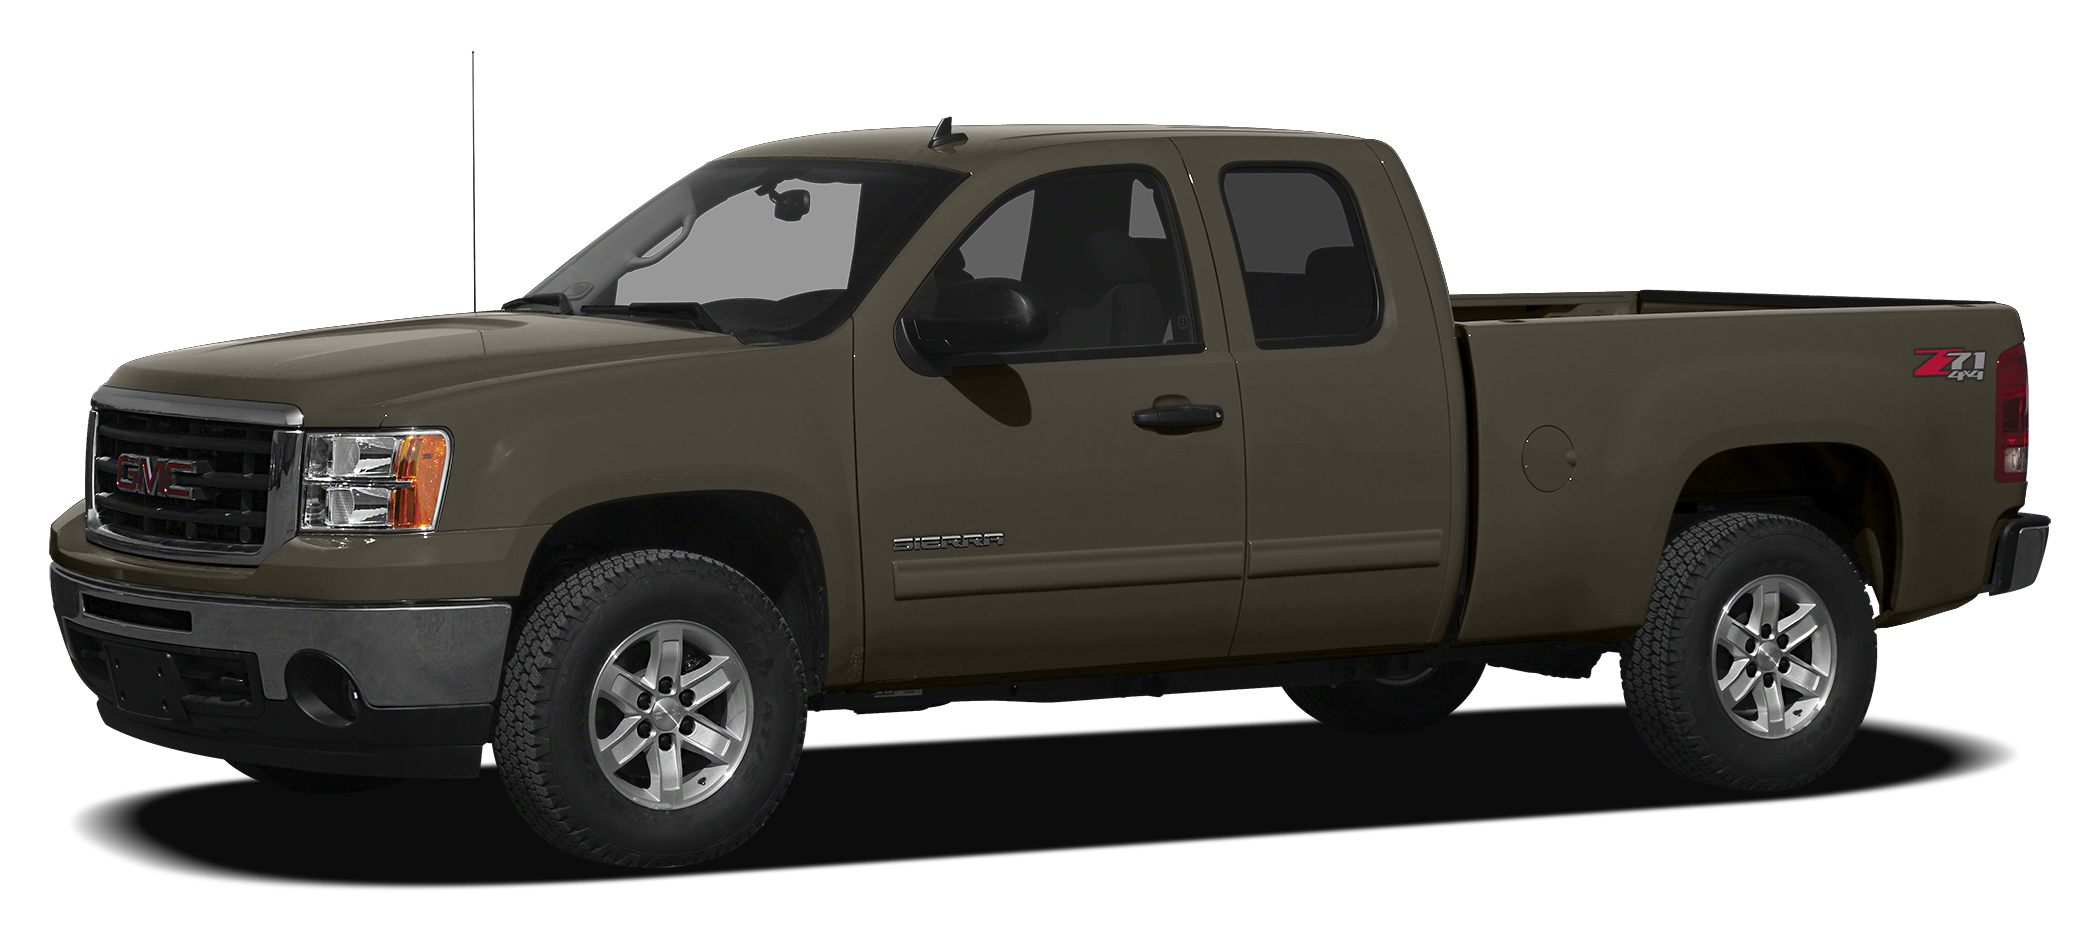 2012 GMC Sierra 1500 SLE Excellent Condition GREAT MILES 29910 200 below NADA Retail BLUETOOT